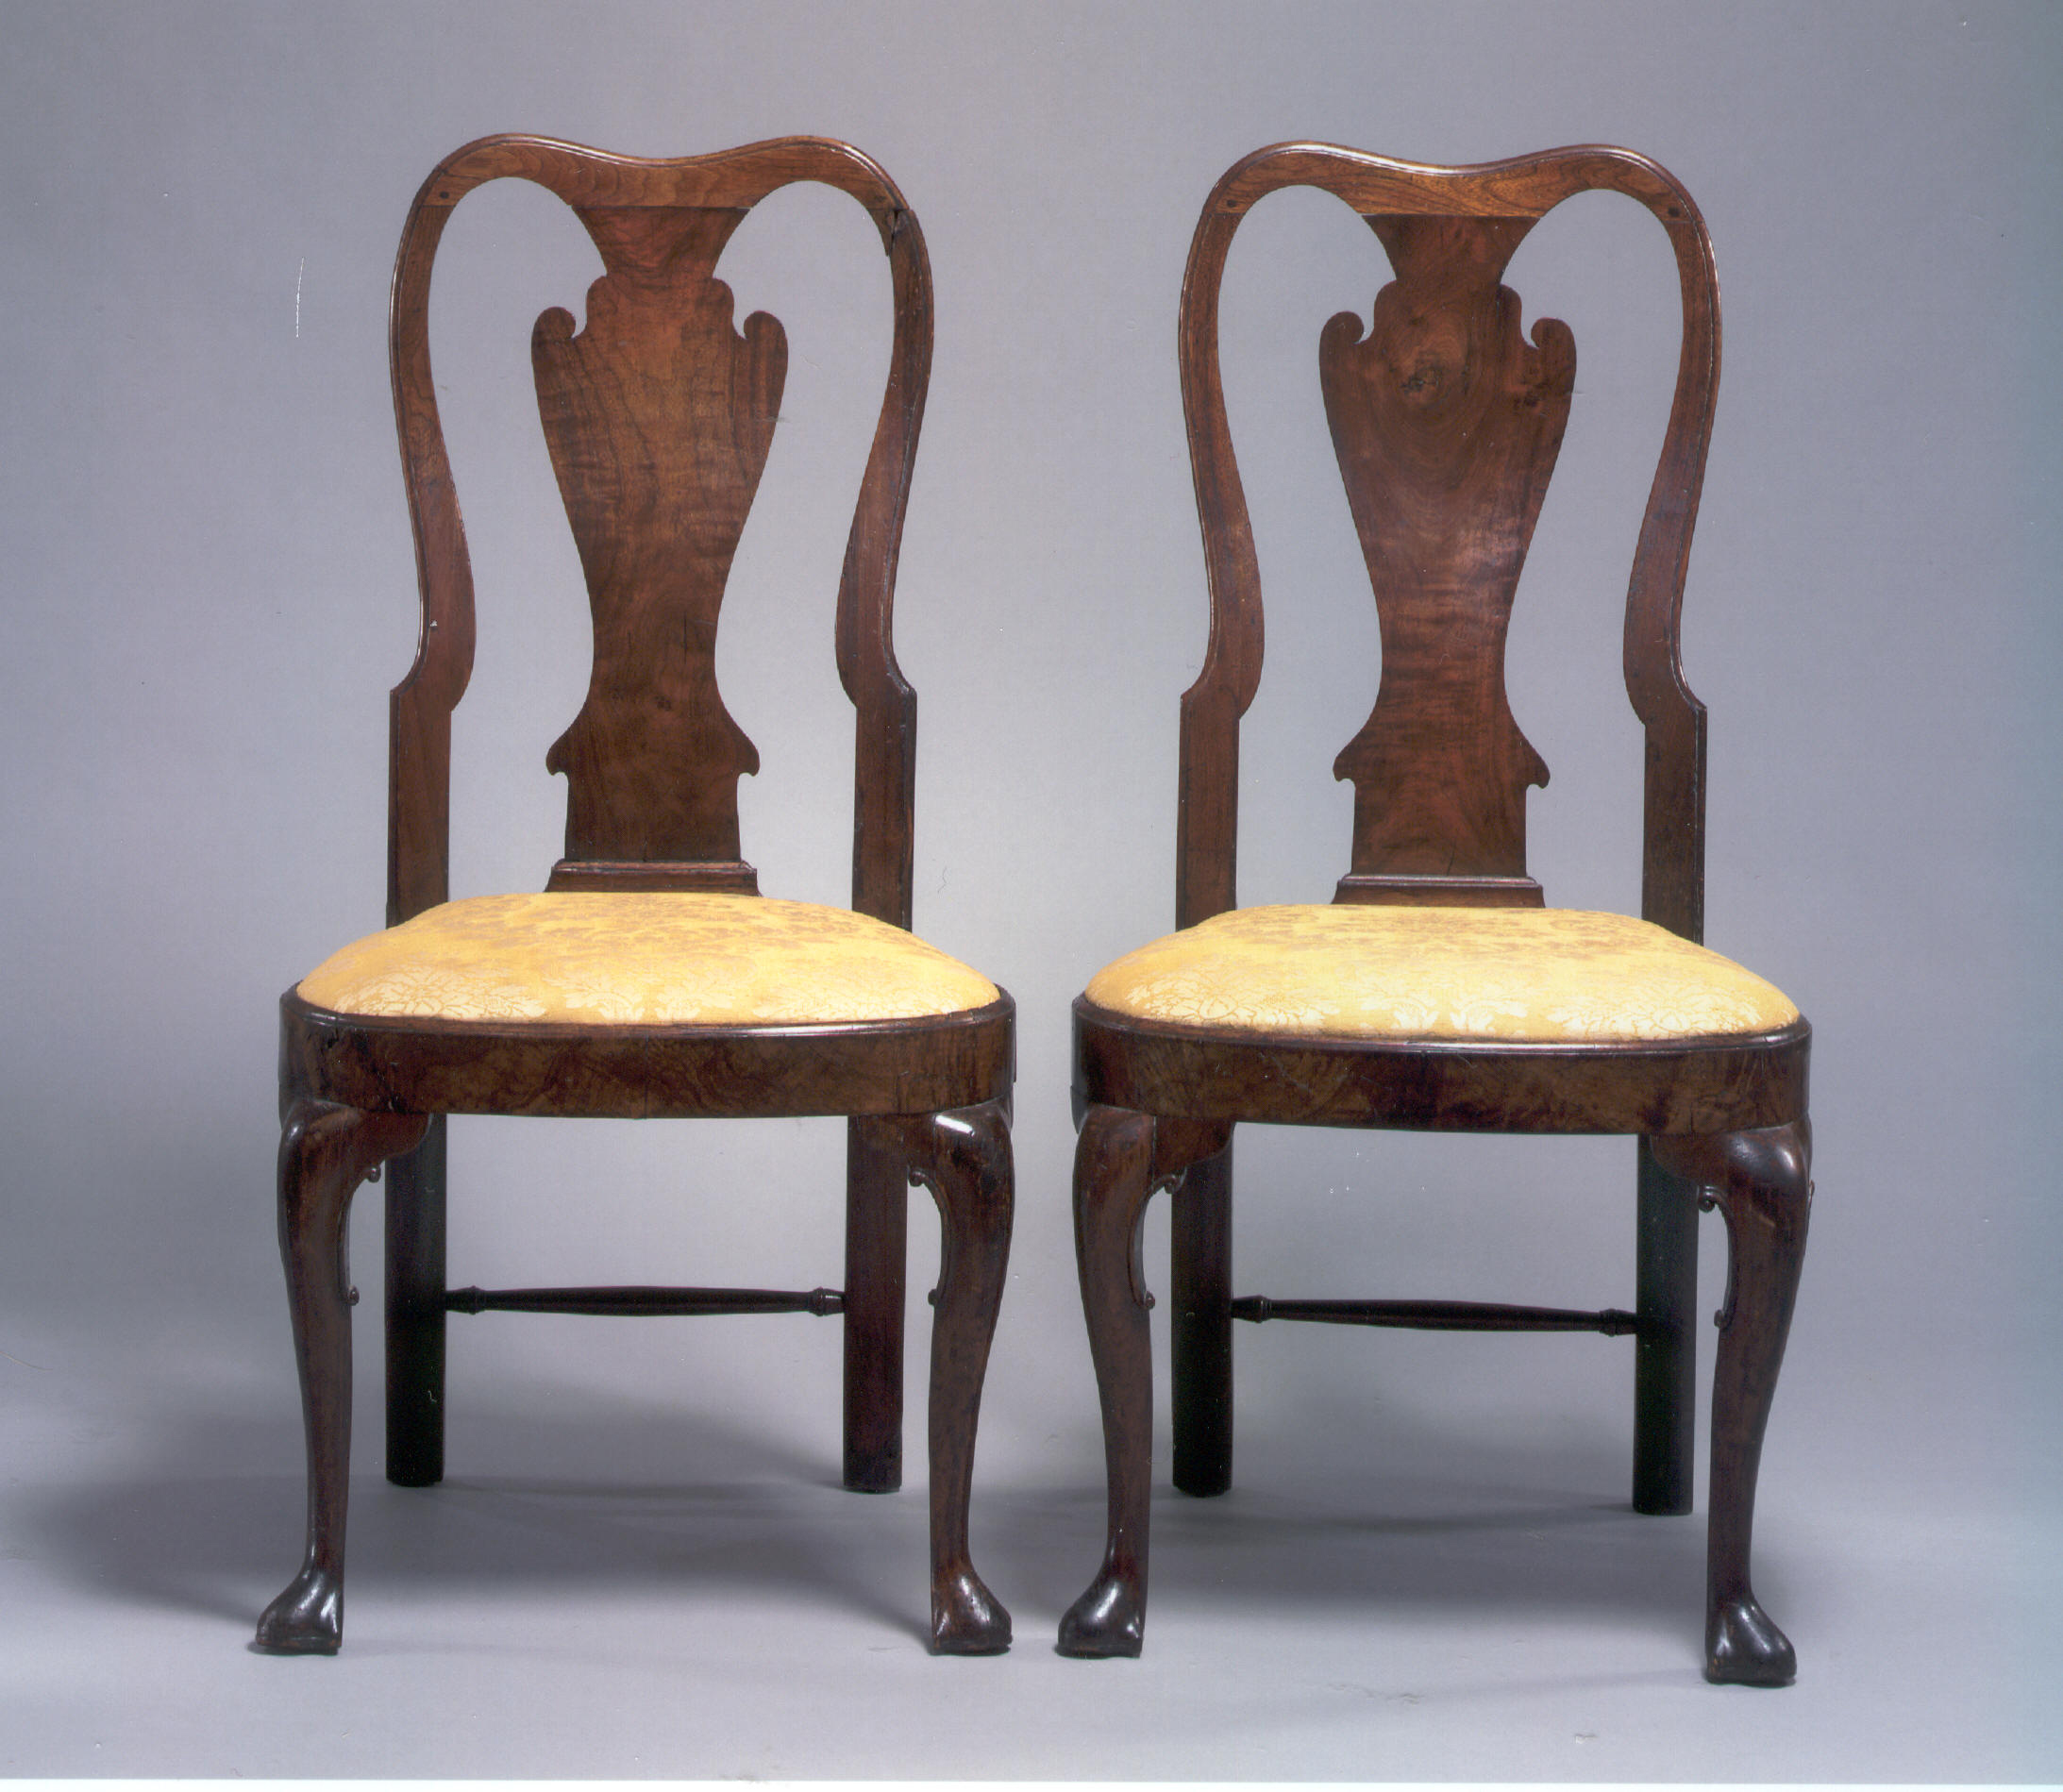 Muebles Reina Victoria - Estilo Reina Ana Taller Y Medio[mjhdah]https://tallerymedio.files.wordpress.com/2012/08/armchair-old-plank-road.jpg